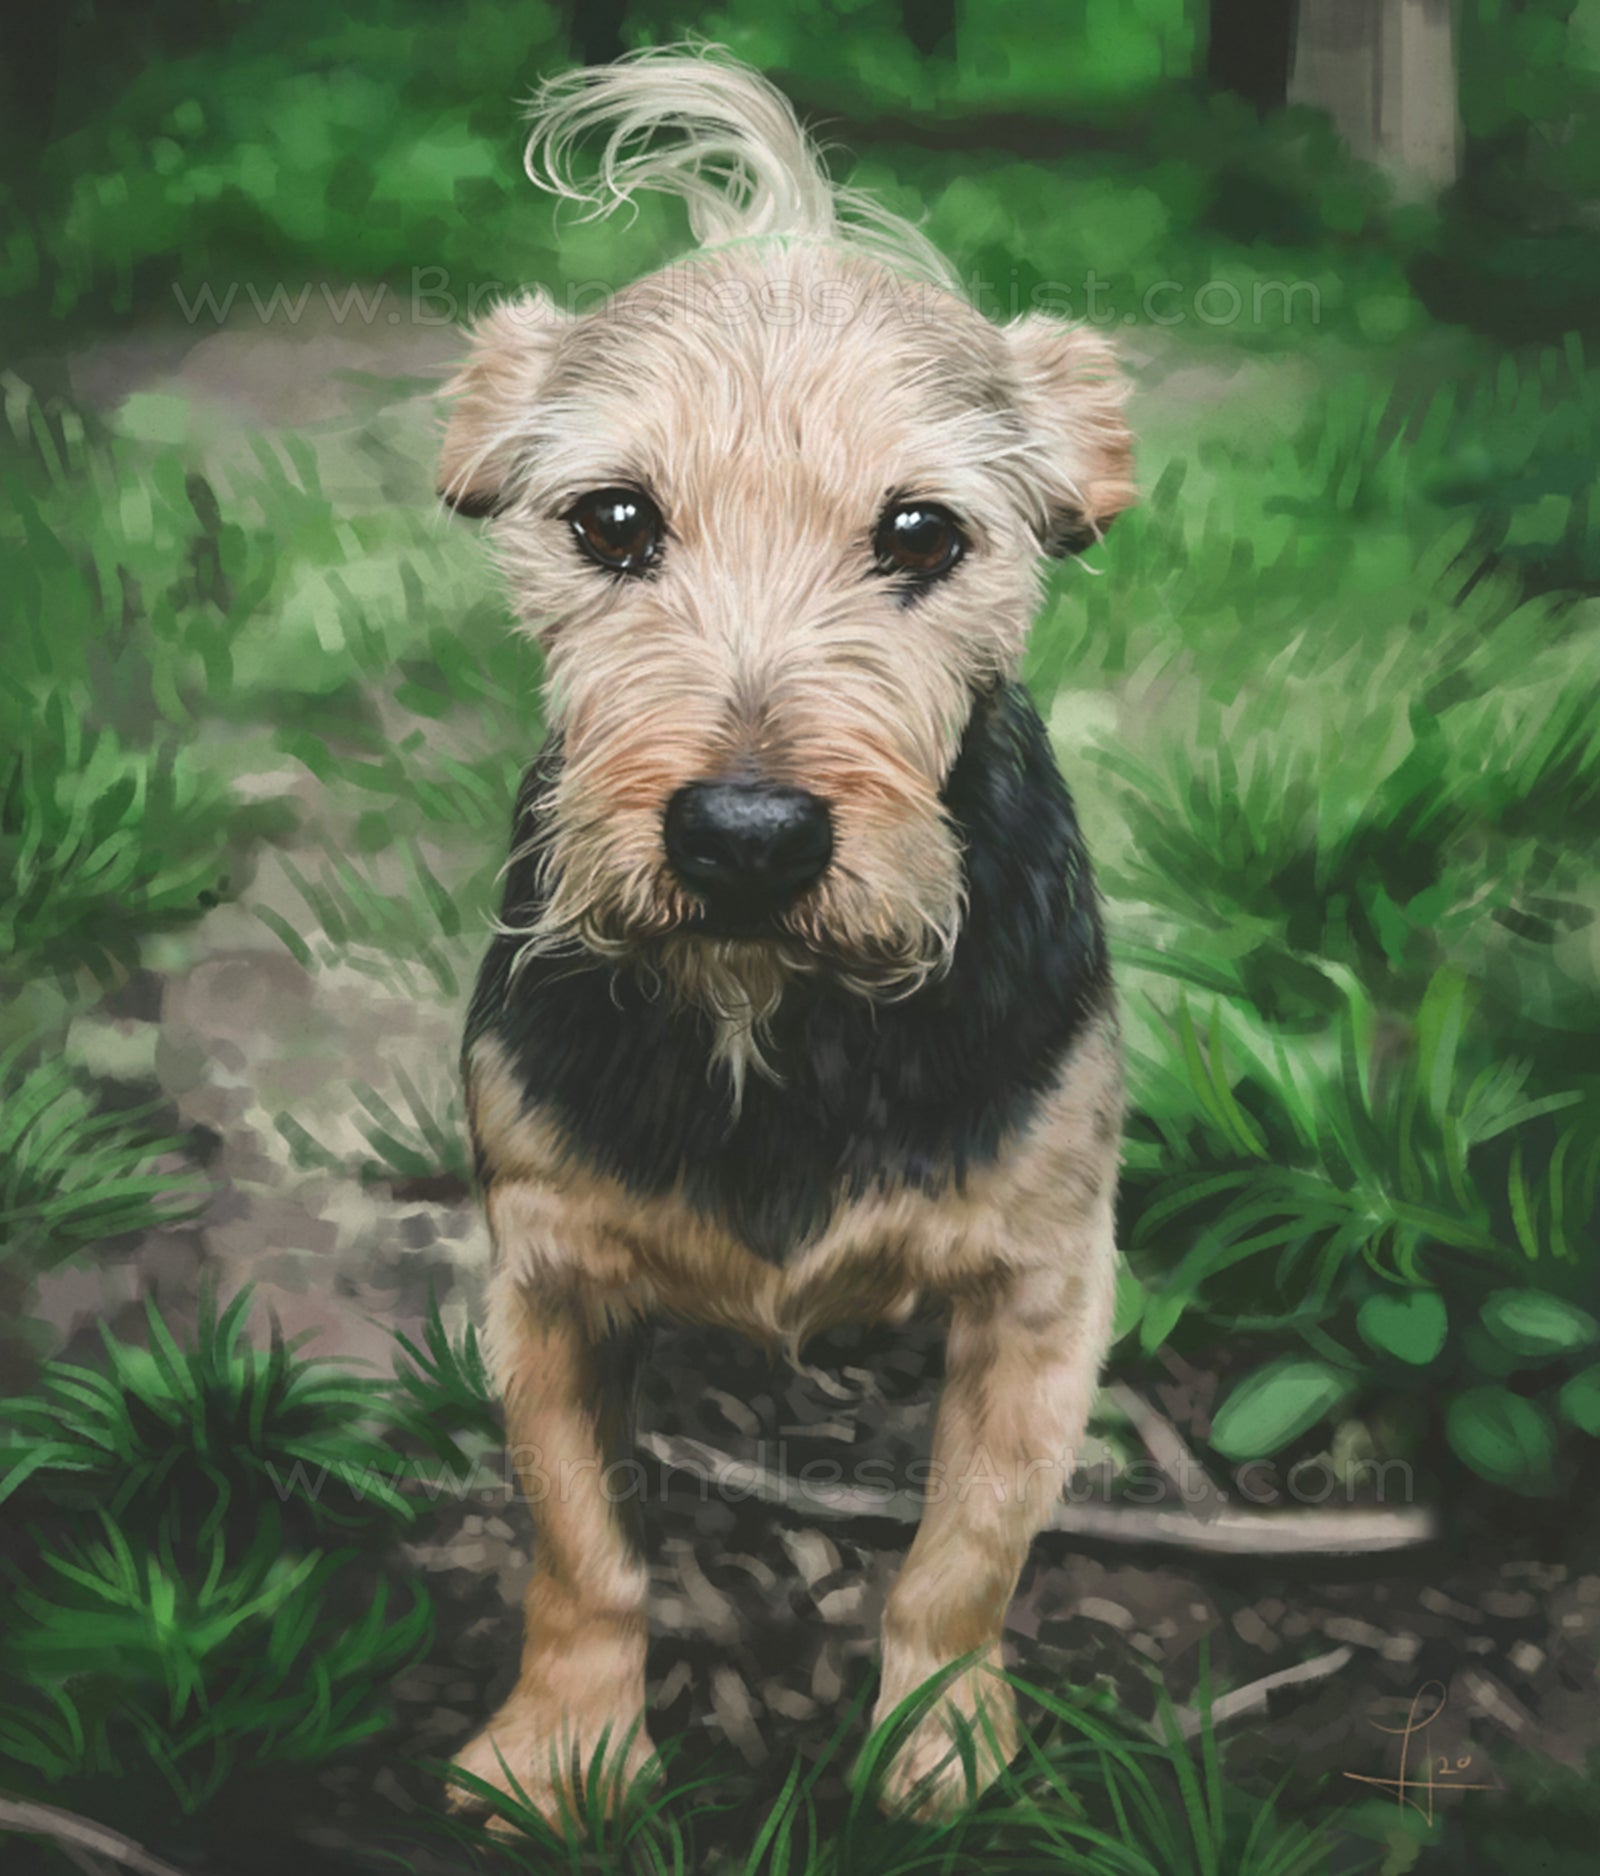 Dog Portrait Digital Painting - Custom Dog Art from Photo | Brandless Artist